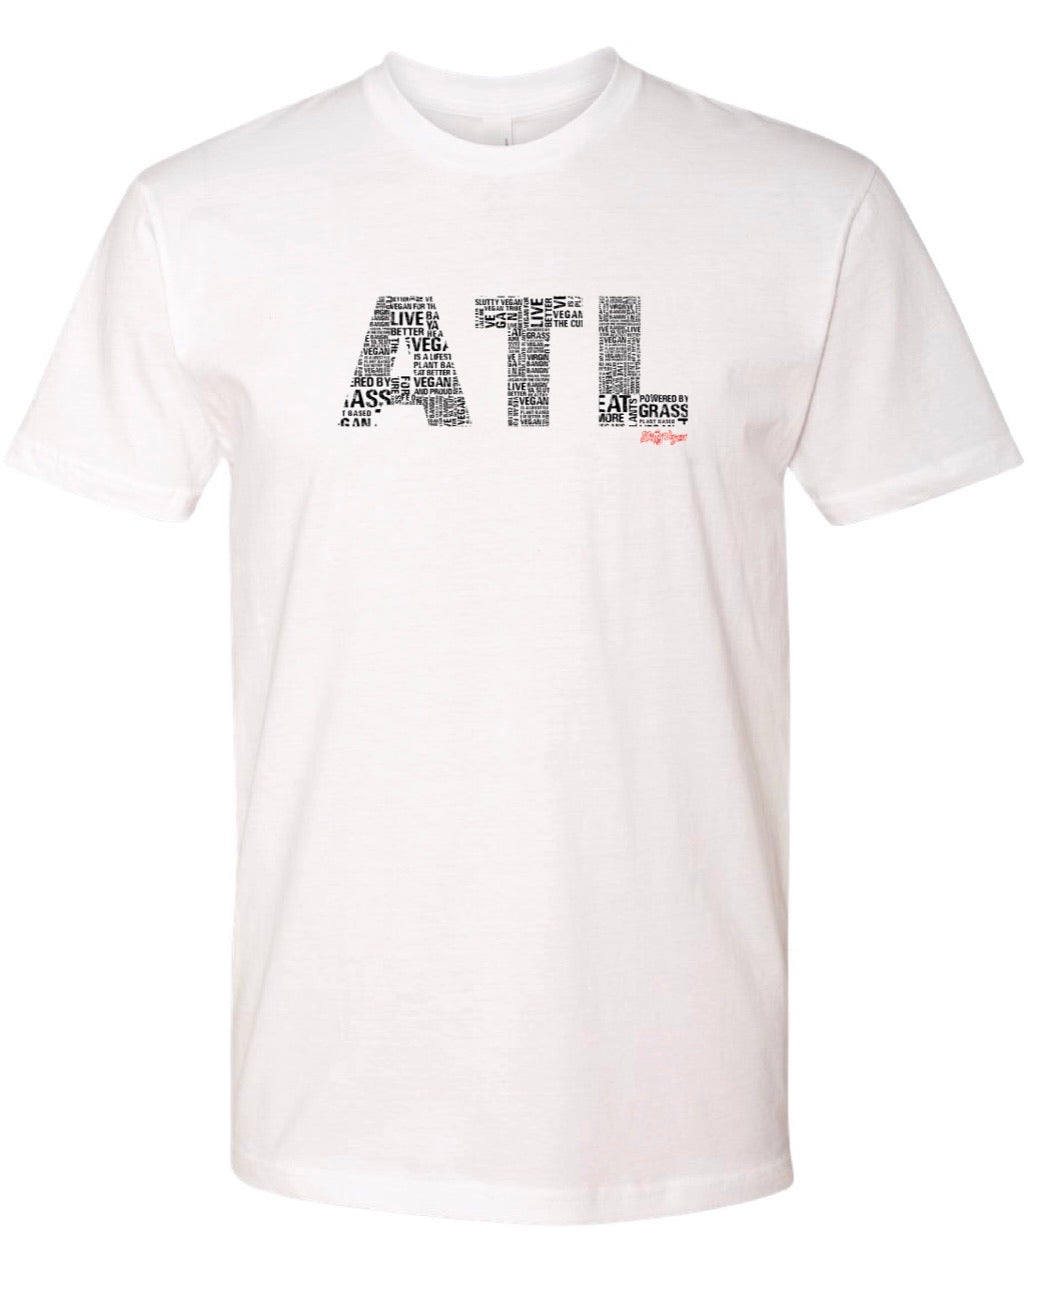 NEW! ATL tee shirt- white